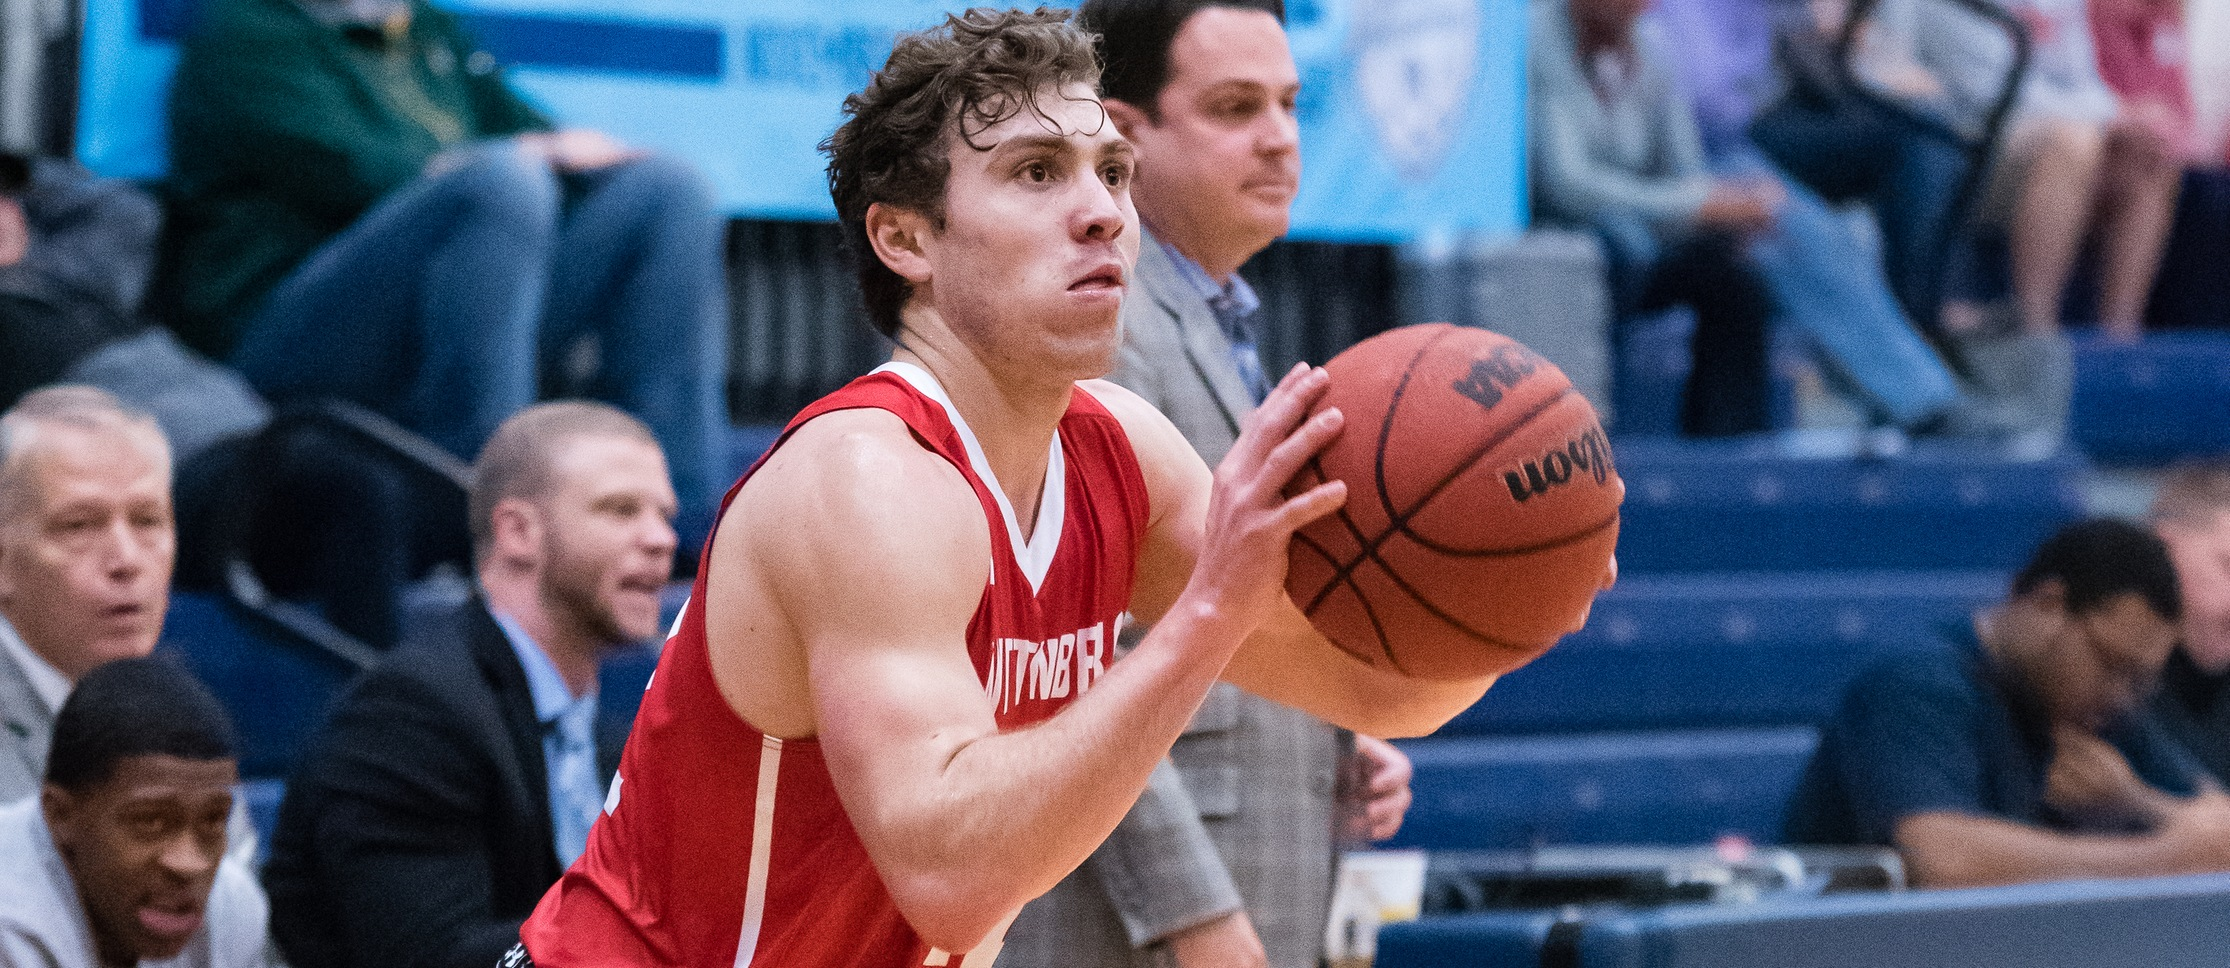 Wittenberg Blows Past Allegheny 83-62